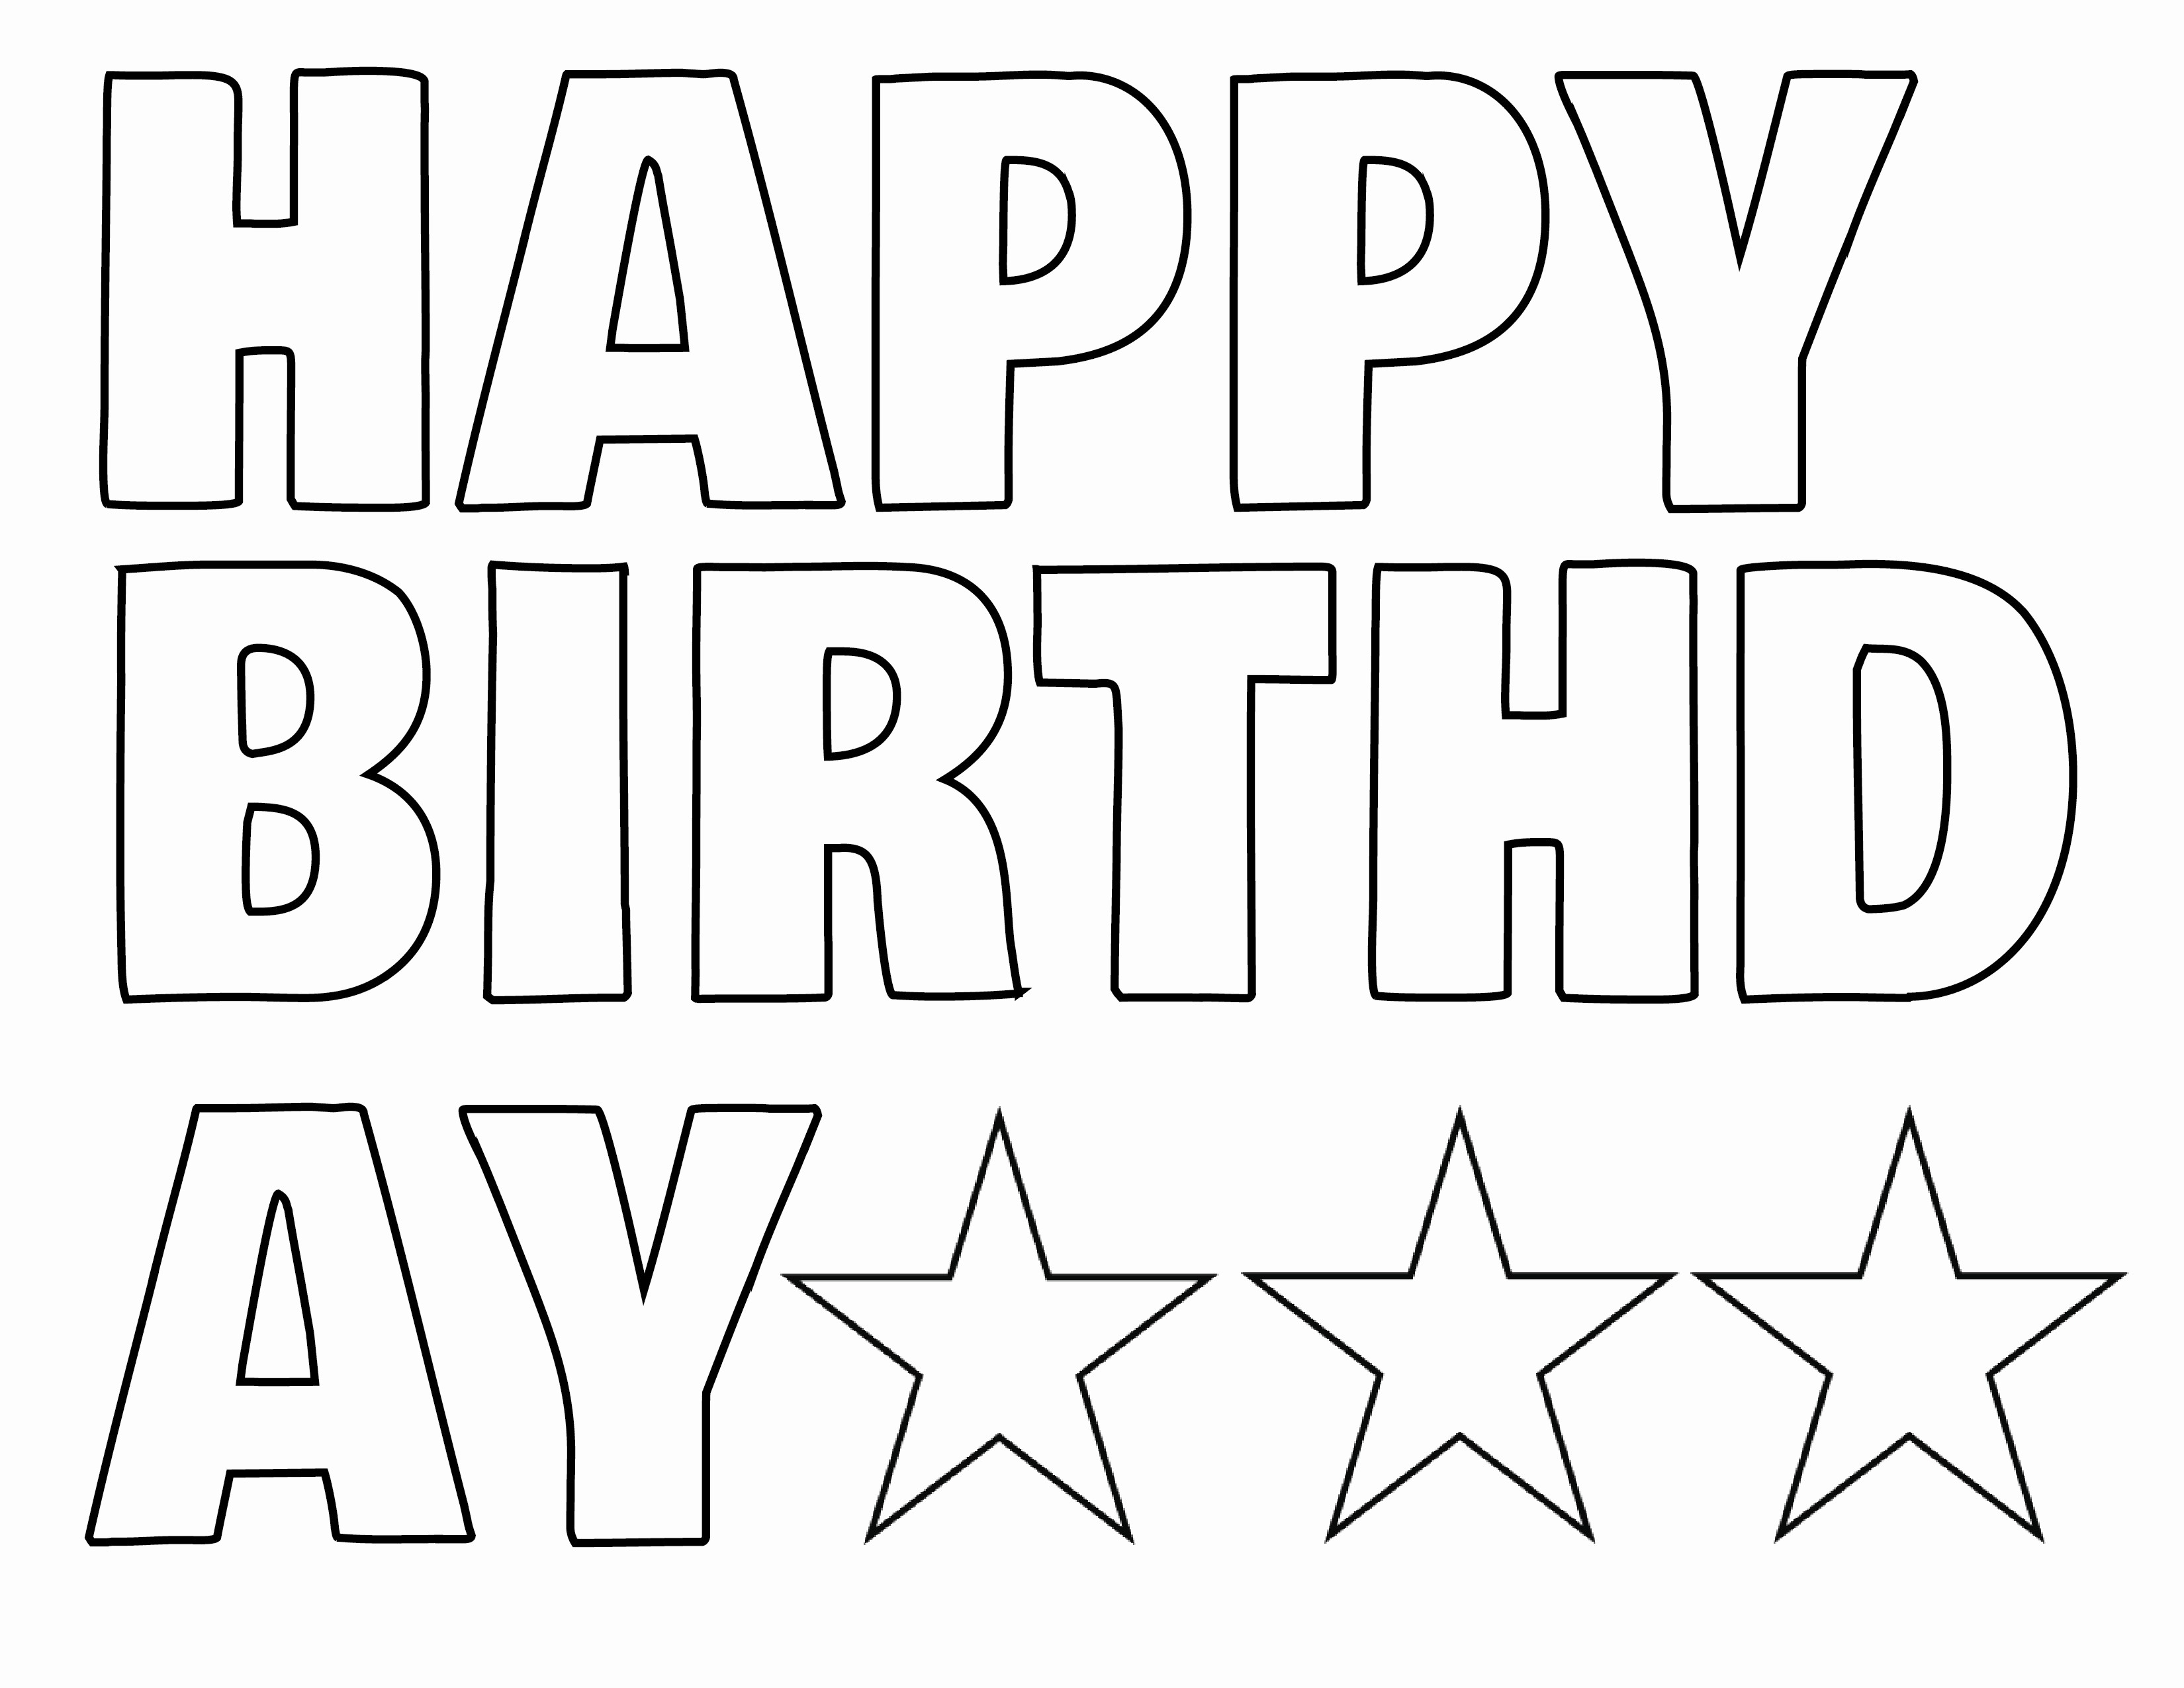 Happy Birthday Letters to Print Best Of Printable Happy Birthday Letters Ukran soochi Co Letter